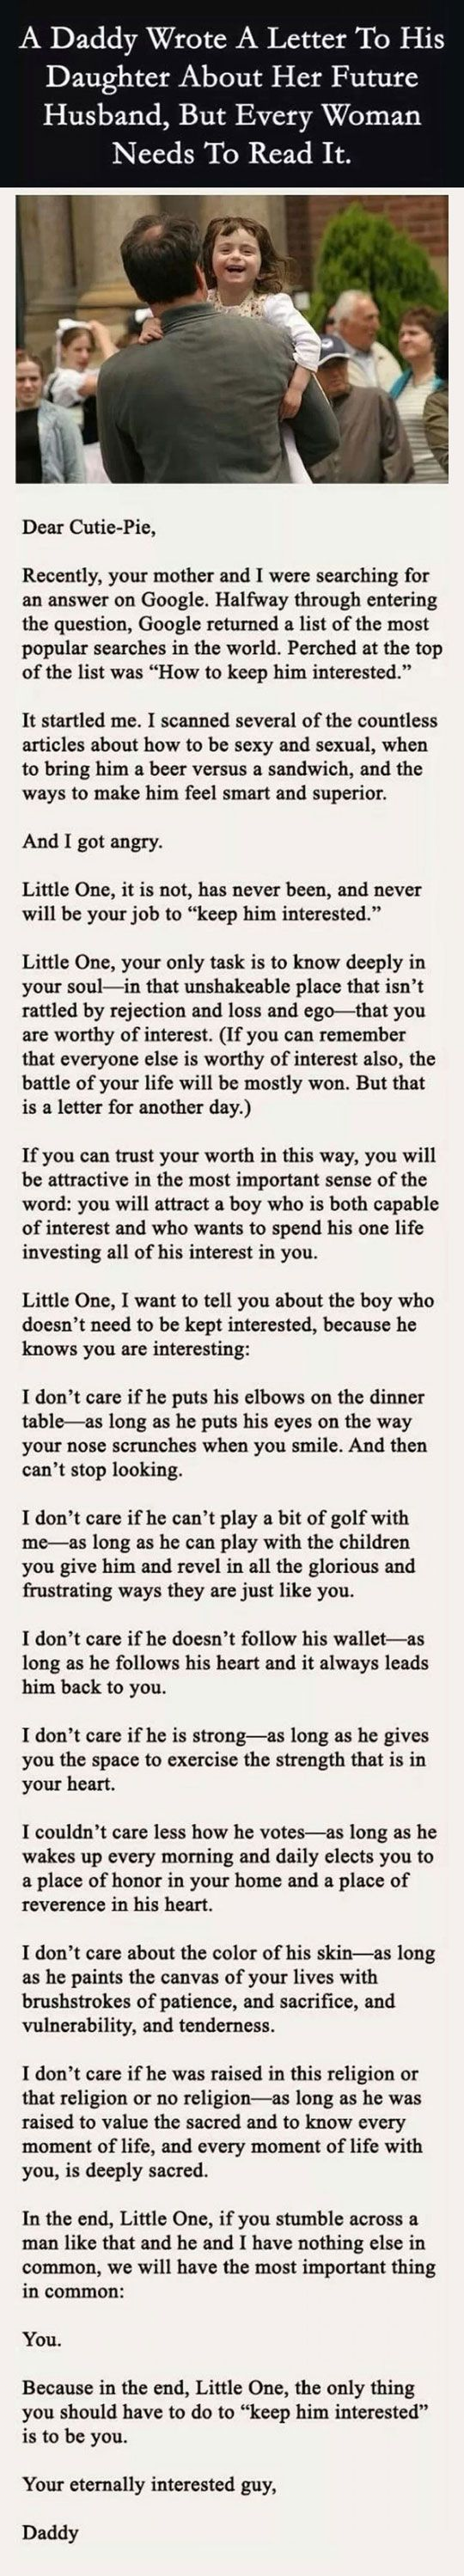 A Daddy Wrote A Letter To His Daughter About Her Future Husband But Every Woman Needs To Read It Daddy DaughterDaughtersFather Quotes